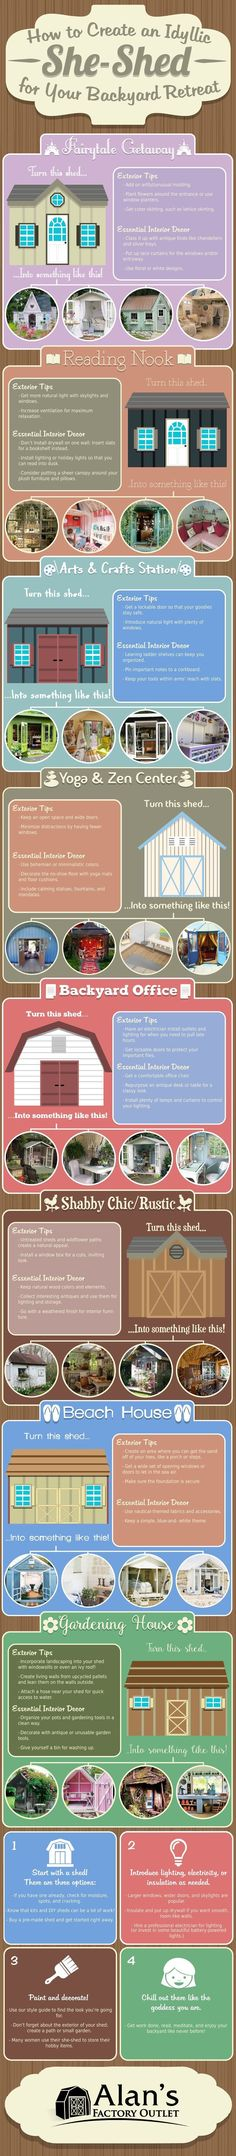 Do you have master plans for taking over your backyard? This guide to creating a she-shed will help you design your very own feminine backyard retreat. #StaceySauertips #DFW #FlowerMound (scheduled via http://www.tailwindapp.com?utm_source=pinterest&utm_medium=twpin&utm_content=post92701947&utm_campaign=scheduler_attribution)